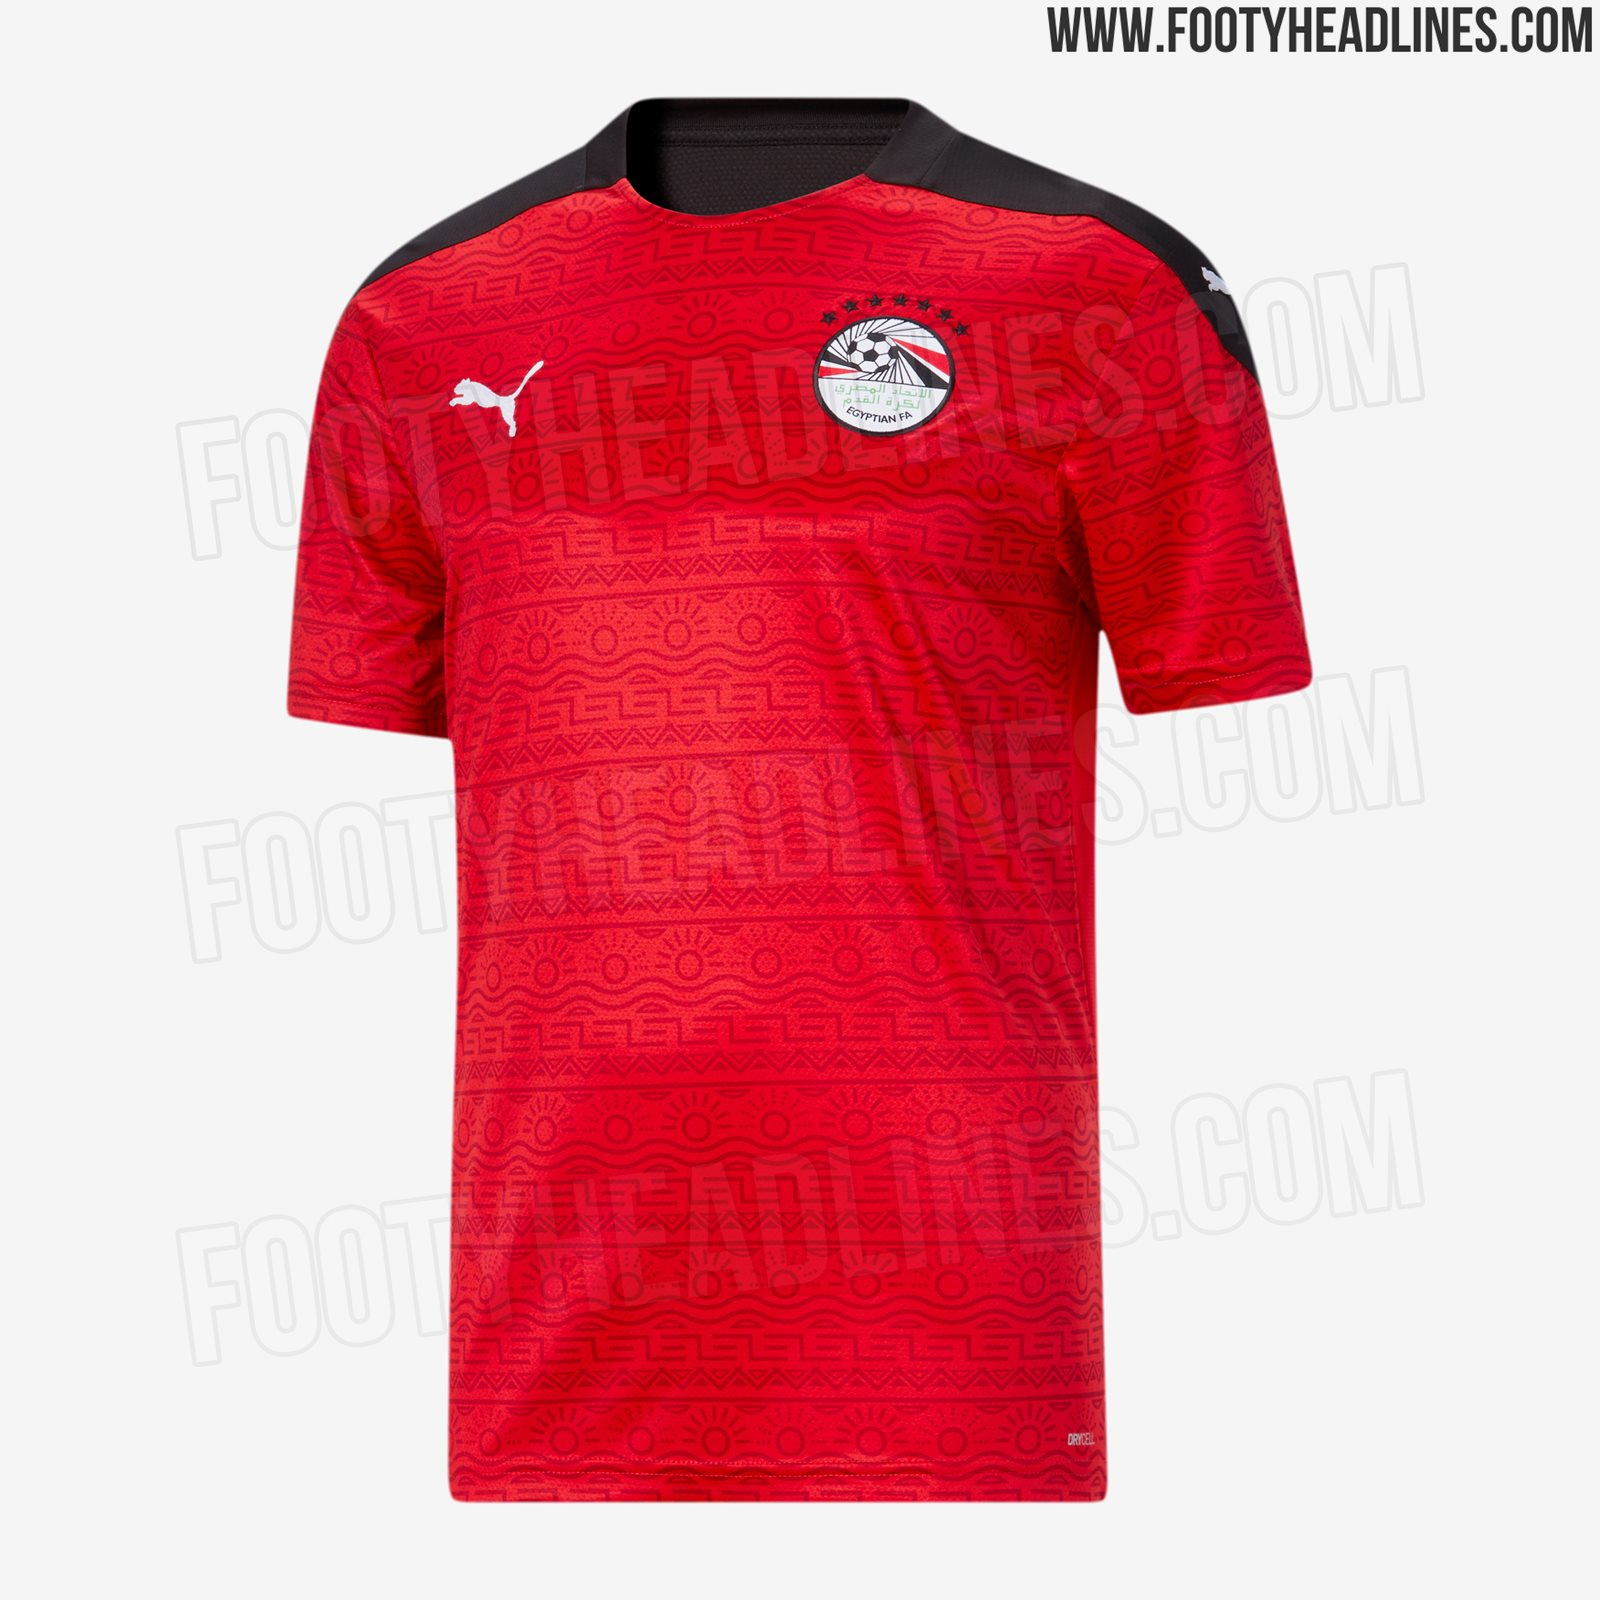 egypt-2020-home-away-kits-2.jpg